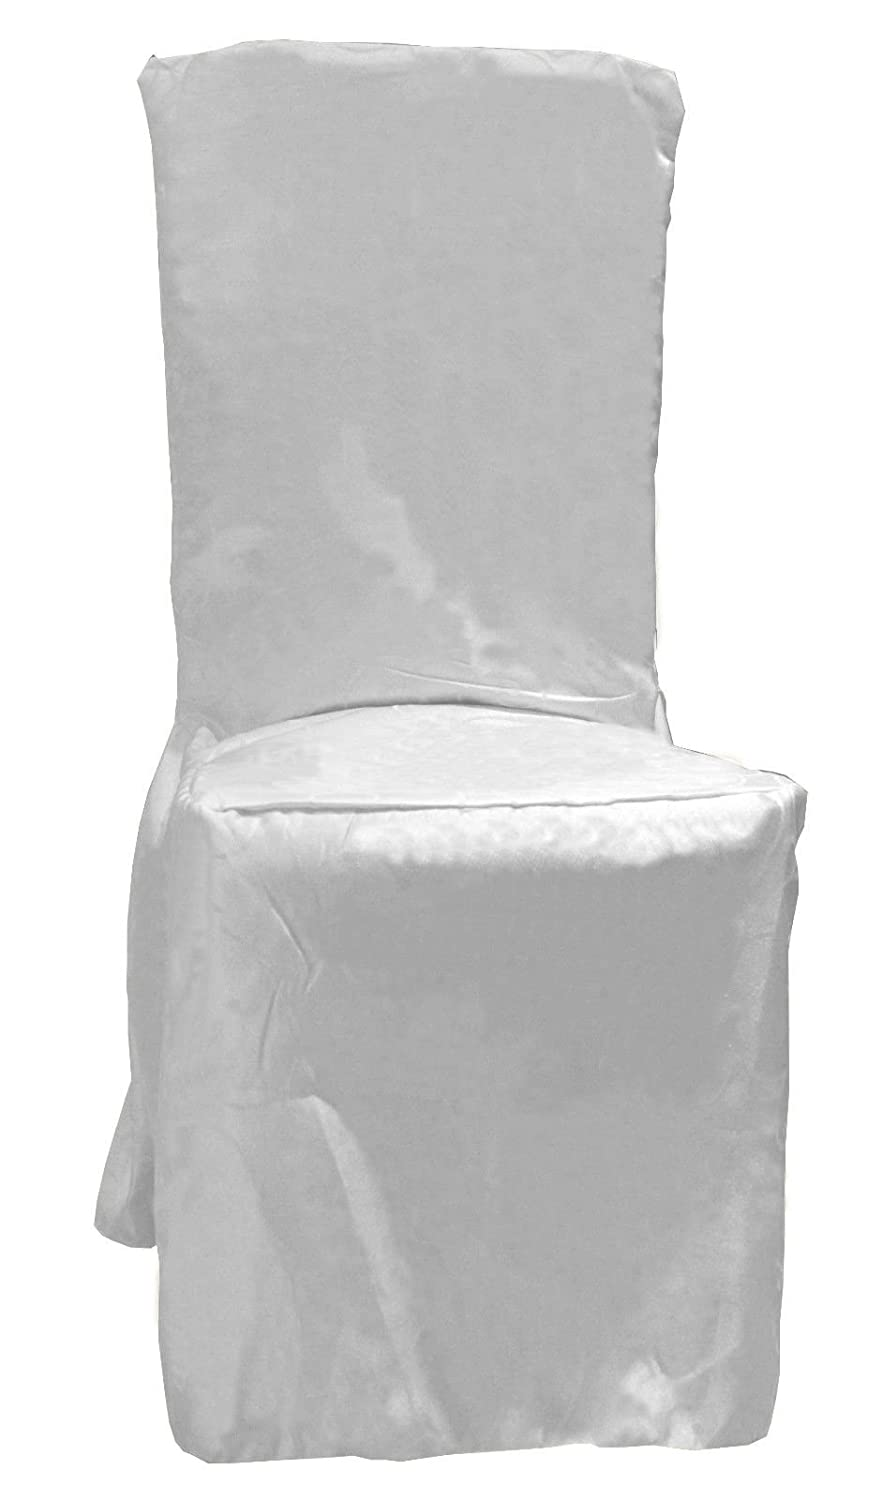 DINING CHAIR COVERS PLAIN WITH PLEATS IN 3 COLORS (White): Amazon.co.uk:  Kitchen U0026 Home Part 86